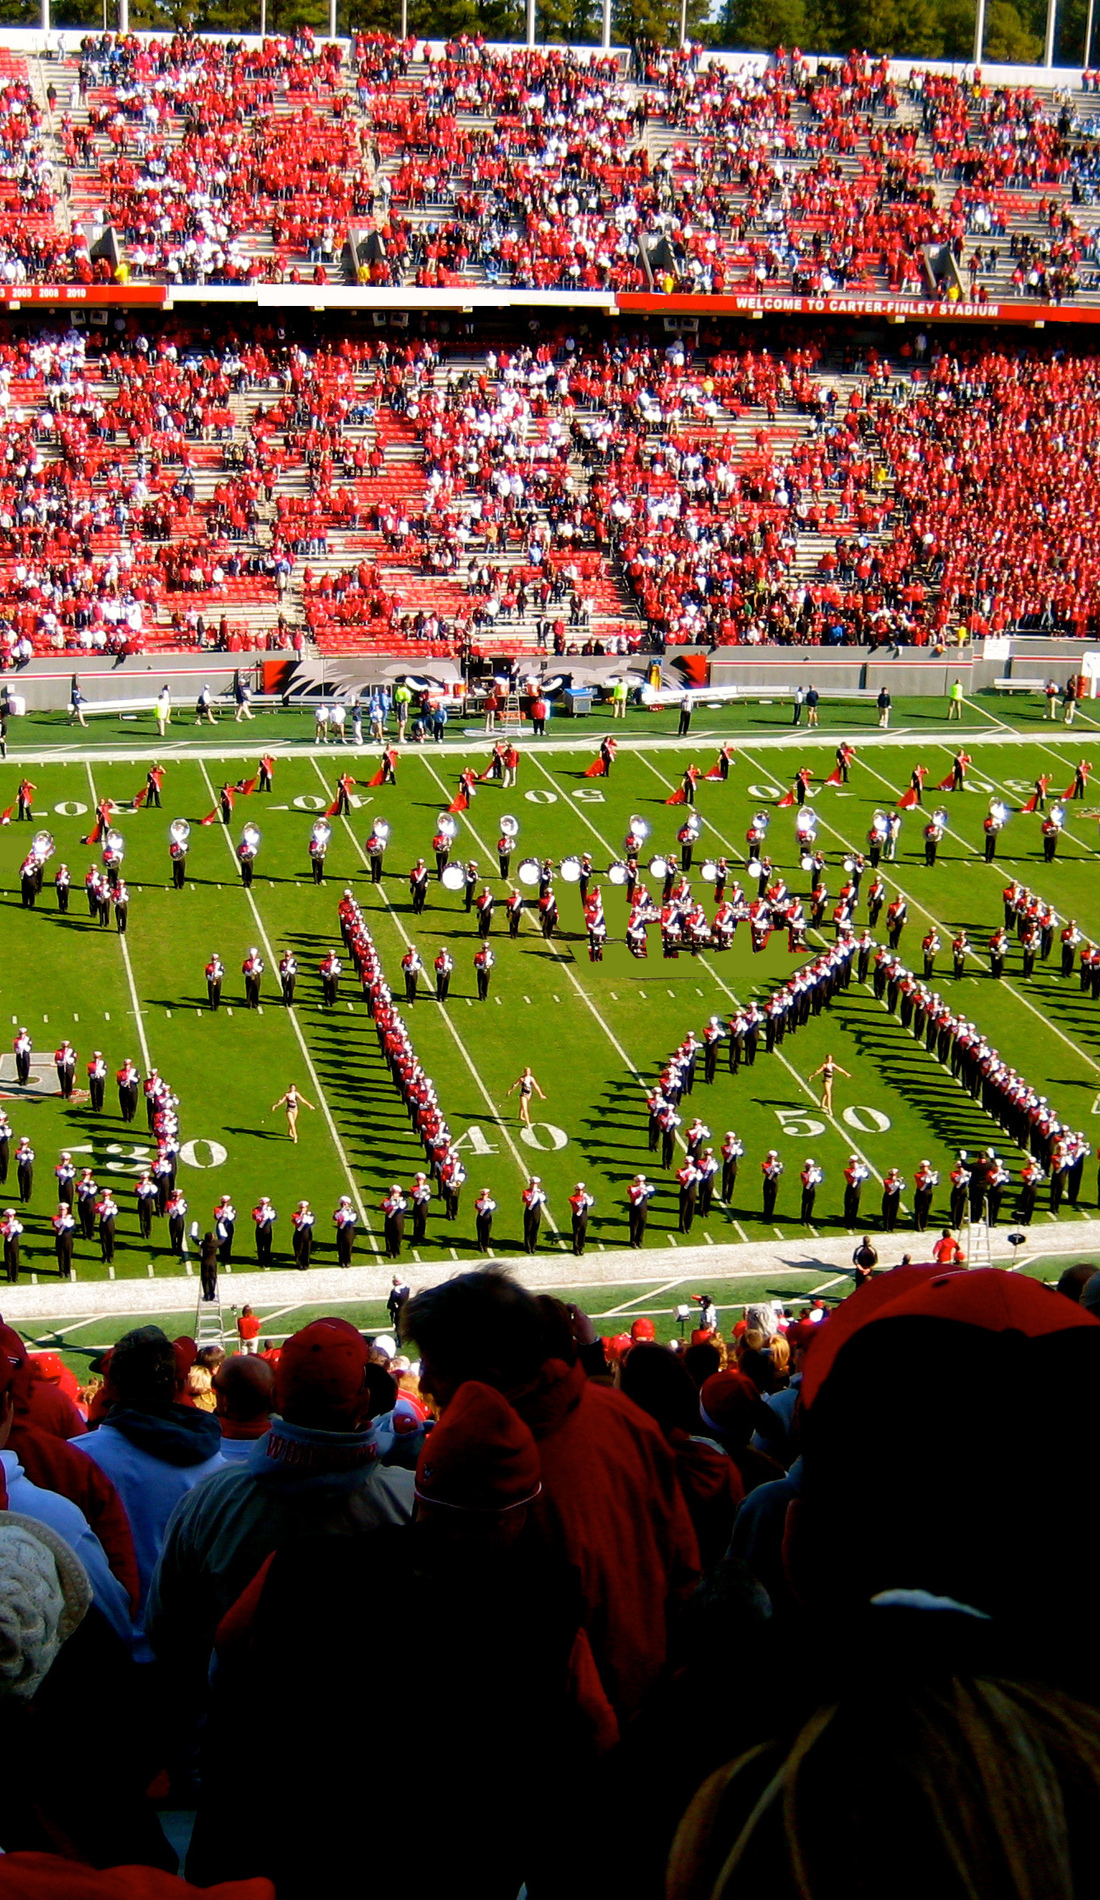 A NC State Wolfpack Football live event